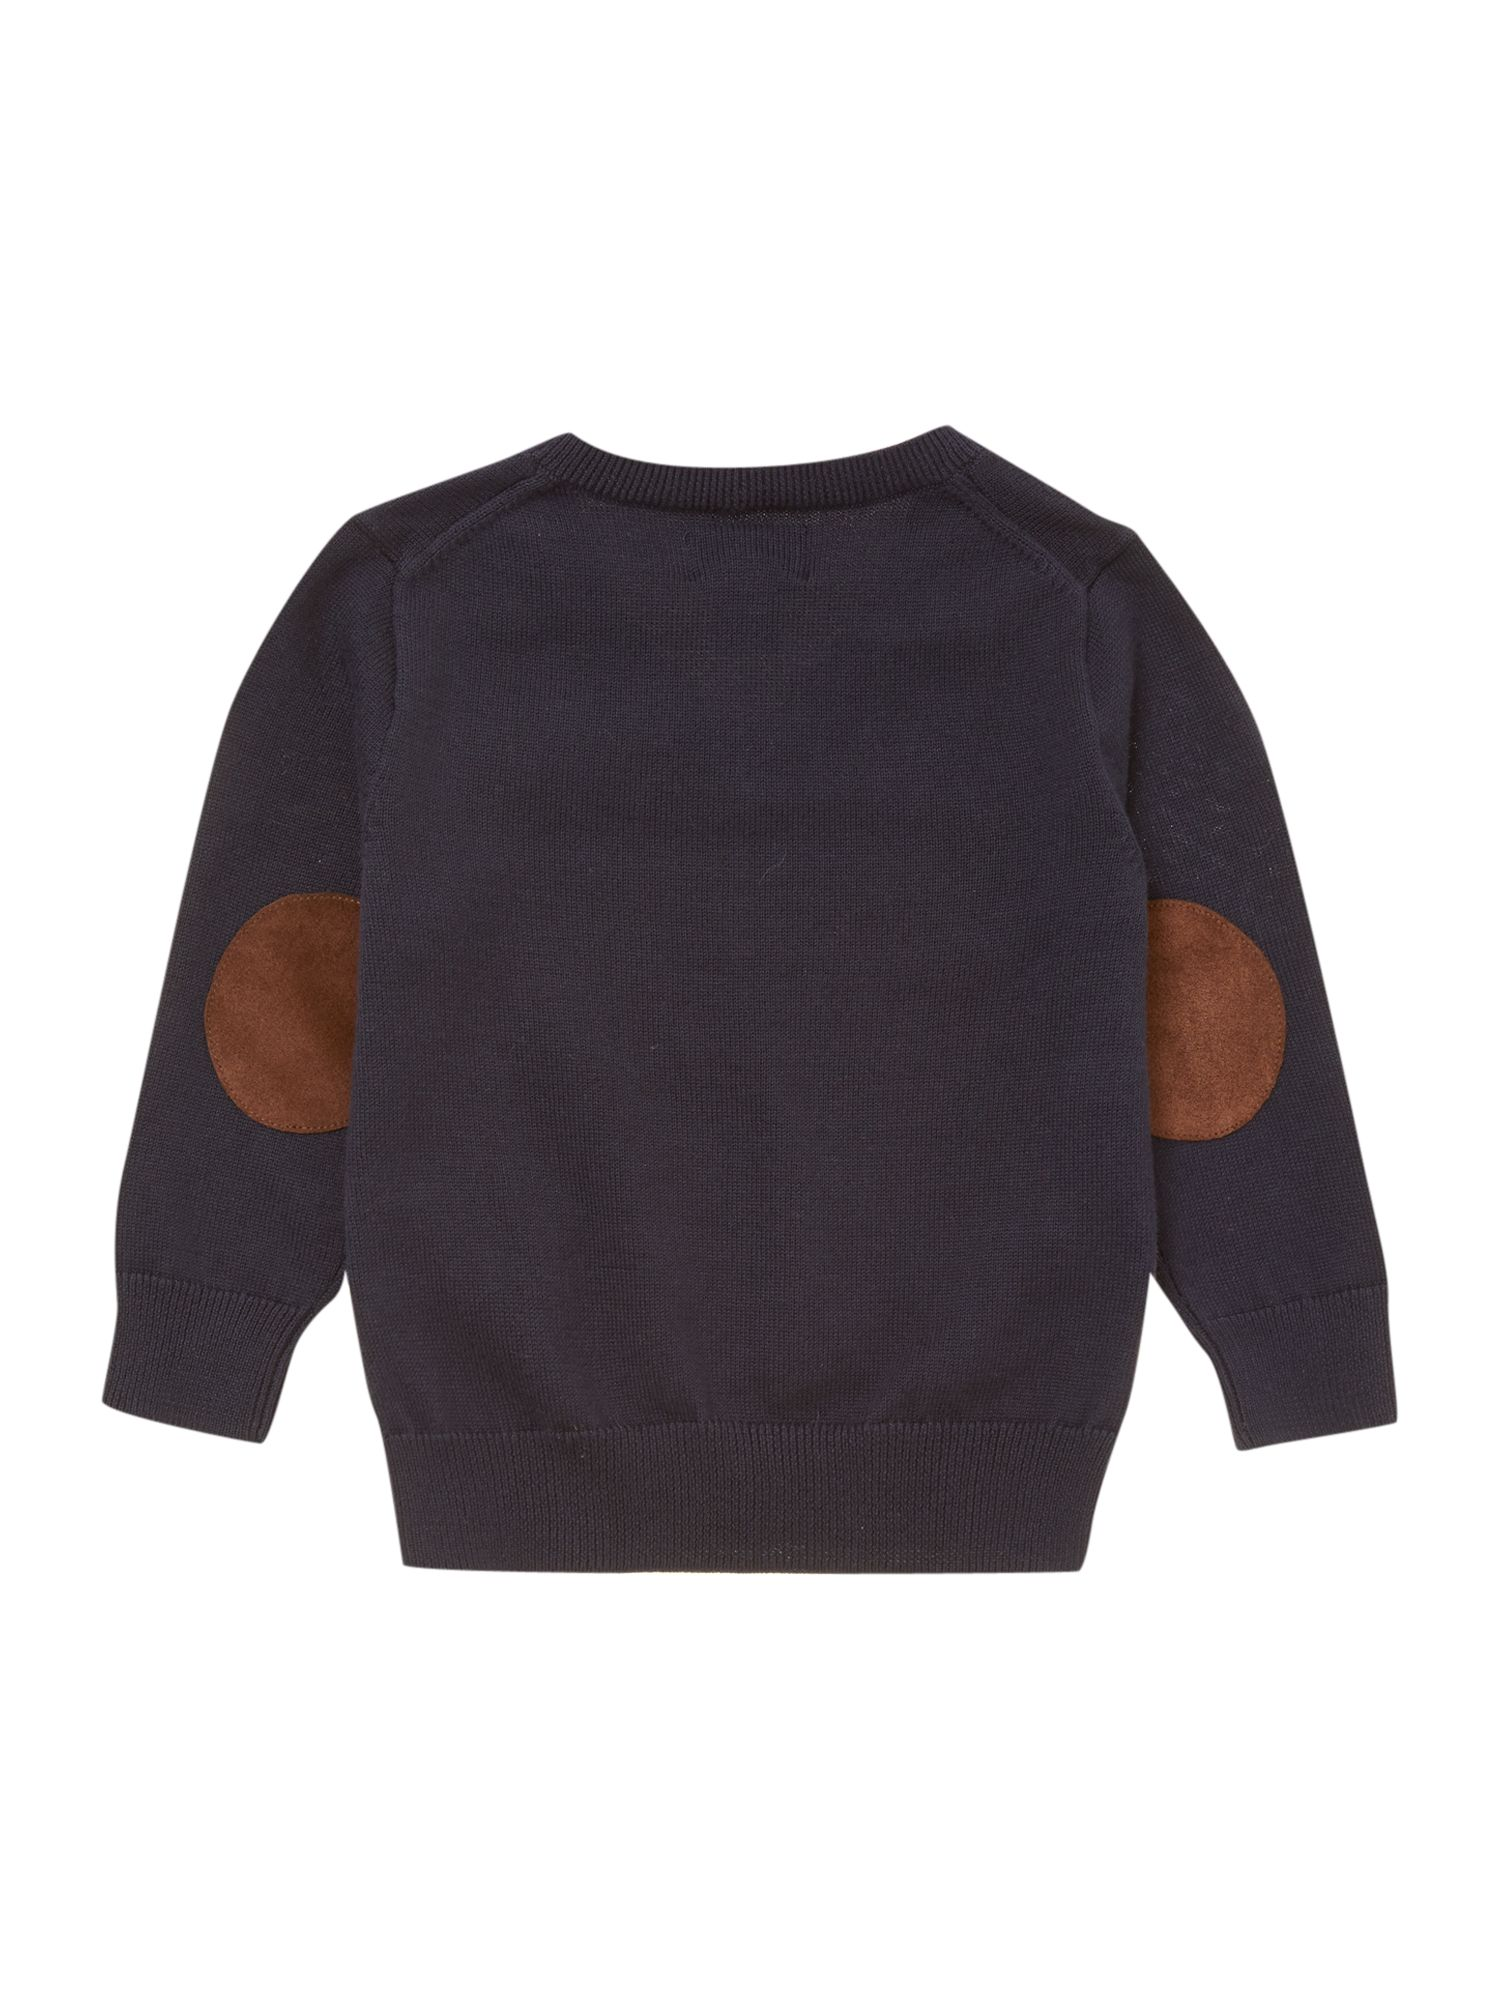 Boys jumper with suede elbow patches